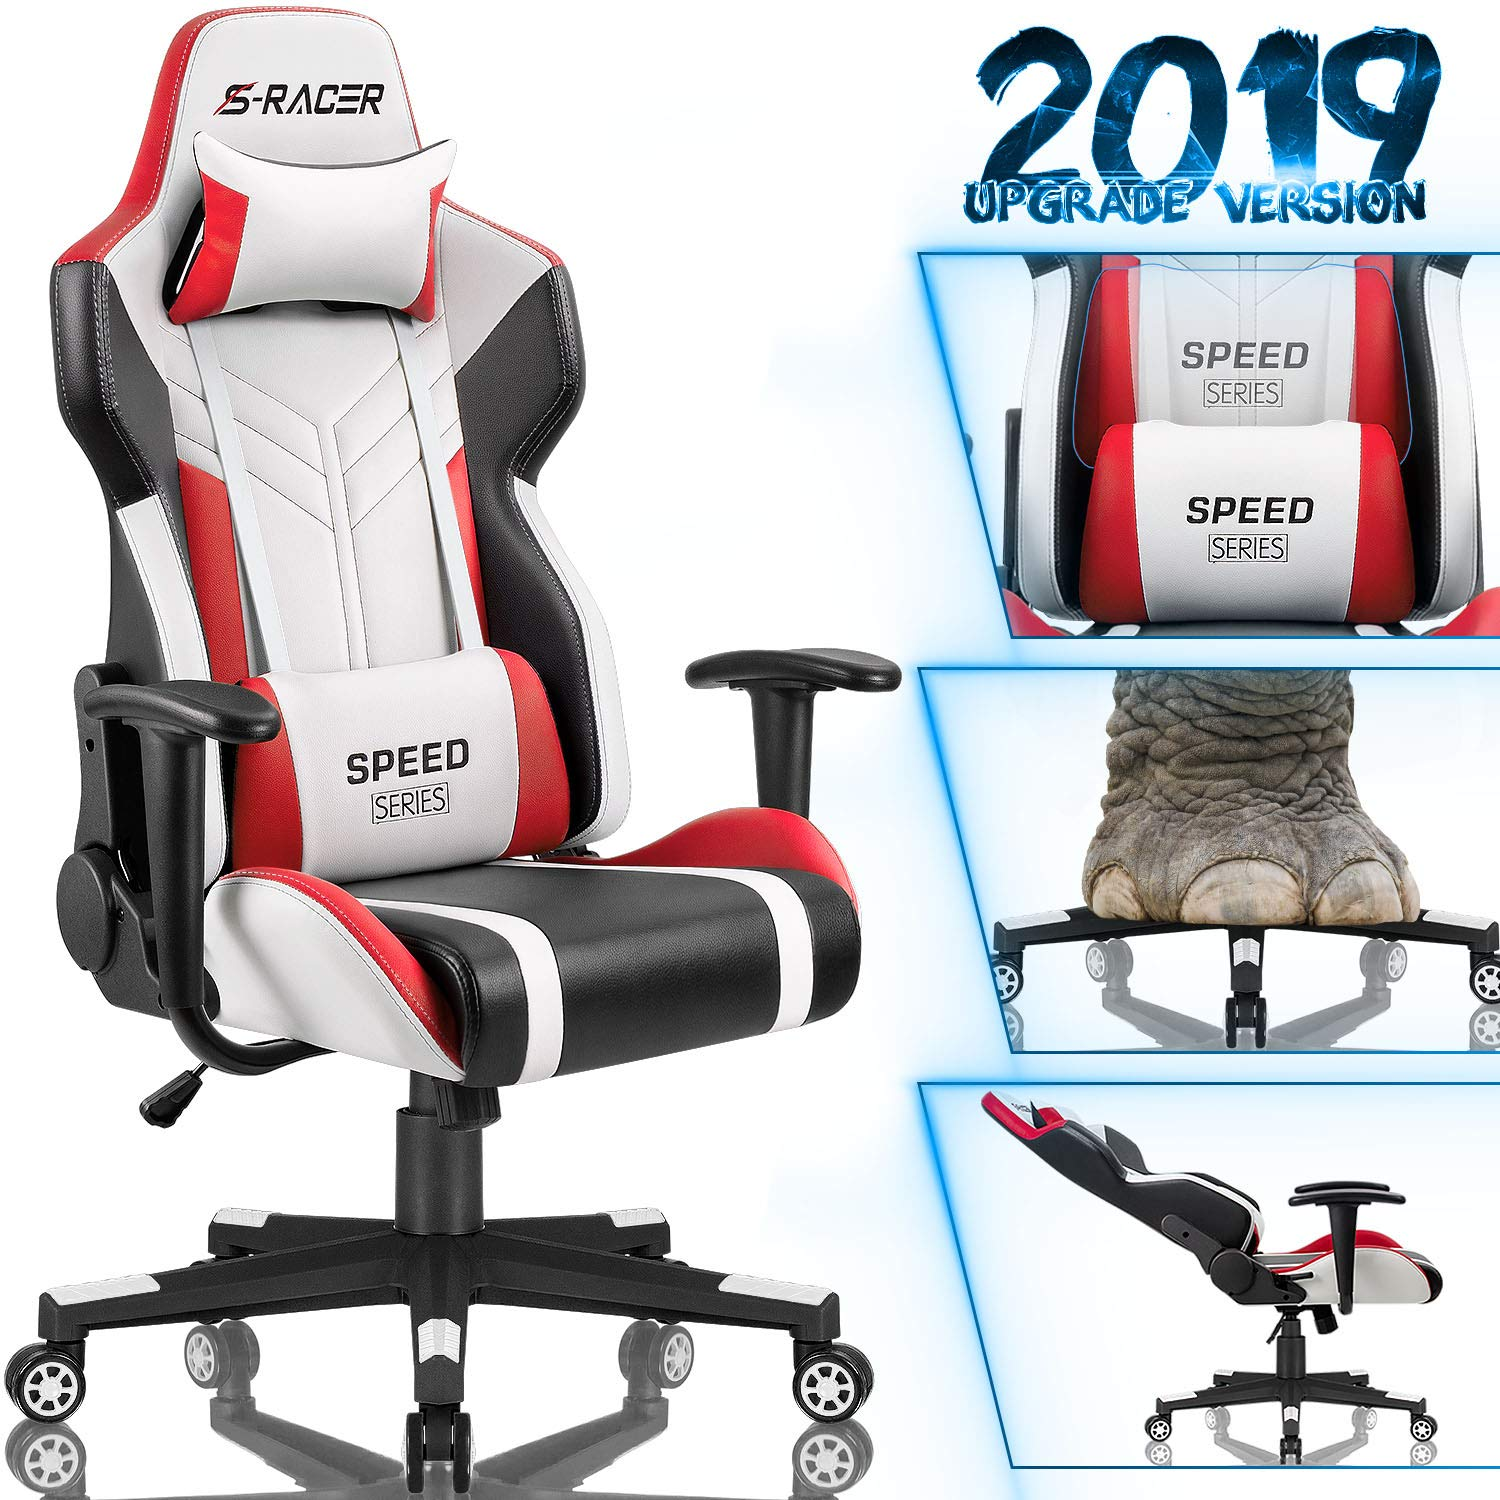 Homall Gaming Chair Racing Style High-Back PU Leather Office Chair Computer Desk Chair Executive and Ergonomic Swivel Chair with Headrest and Lumbar Support (White/Red) by Homall (Image #1)